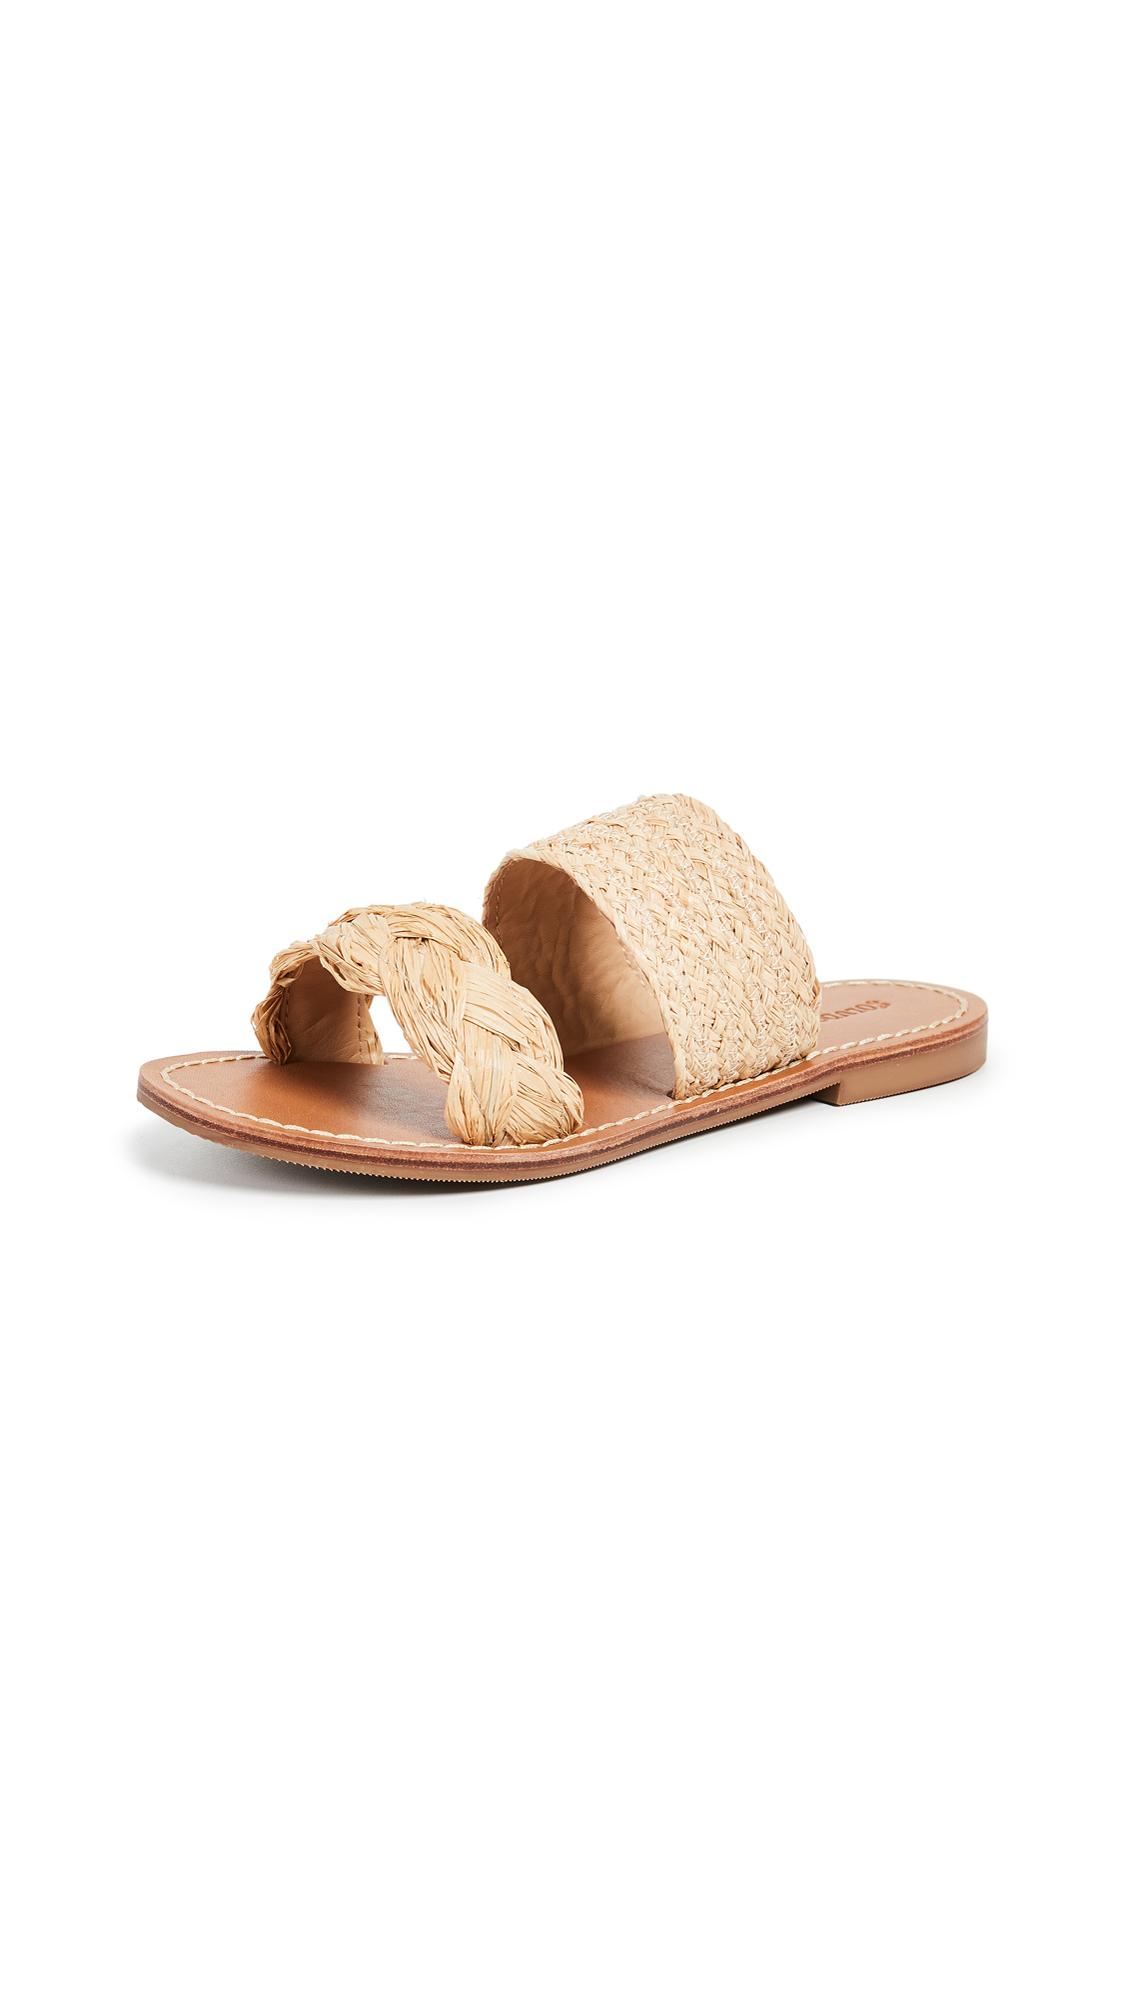 Soludos Raffia Braided Slide Sandals In Natural